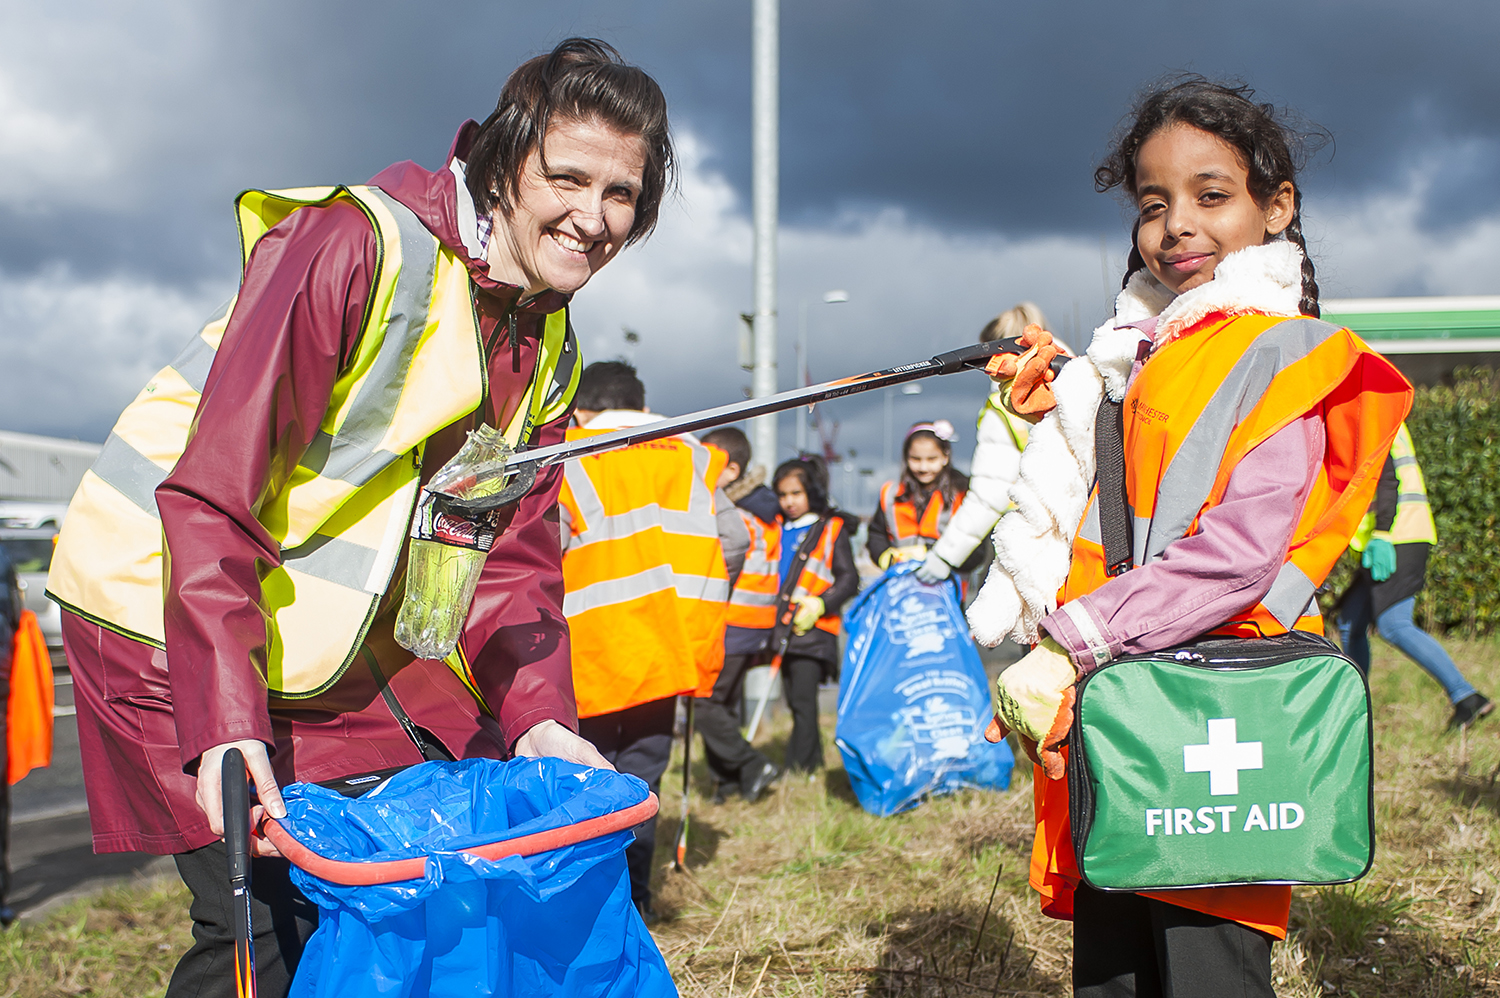 An image of a woman and a girl doing a litter-pick for the Great British Spring Clean